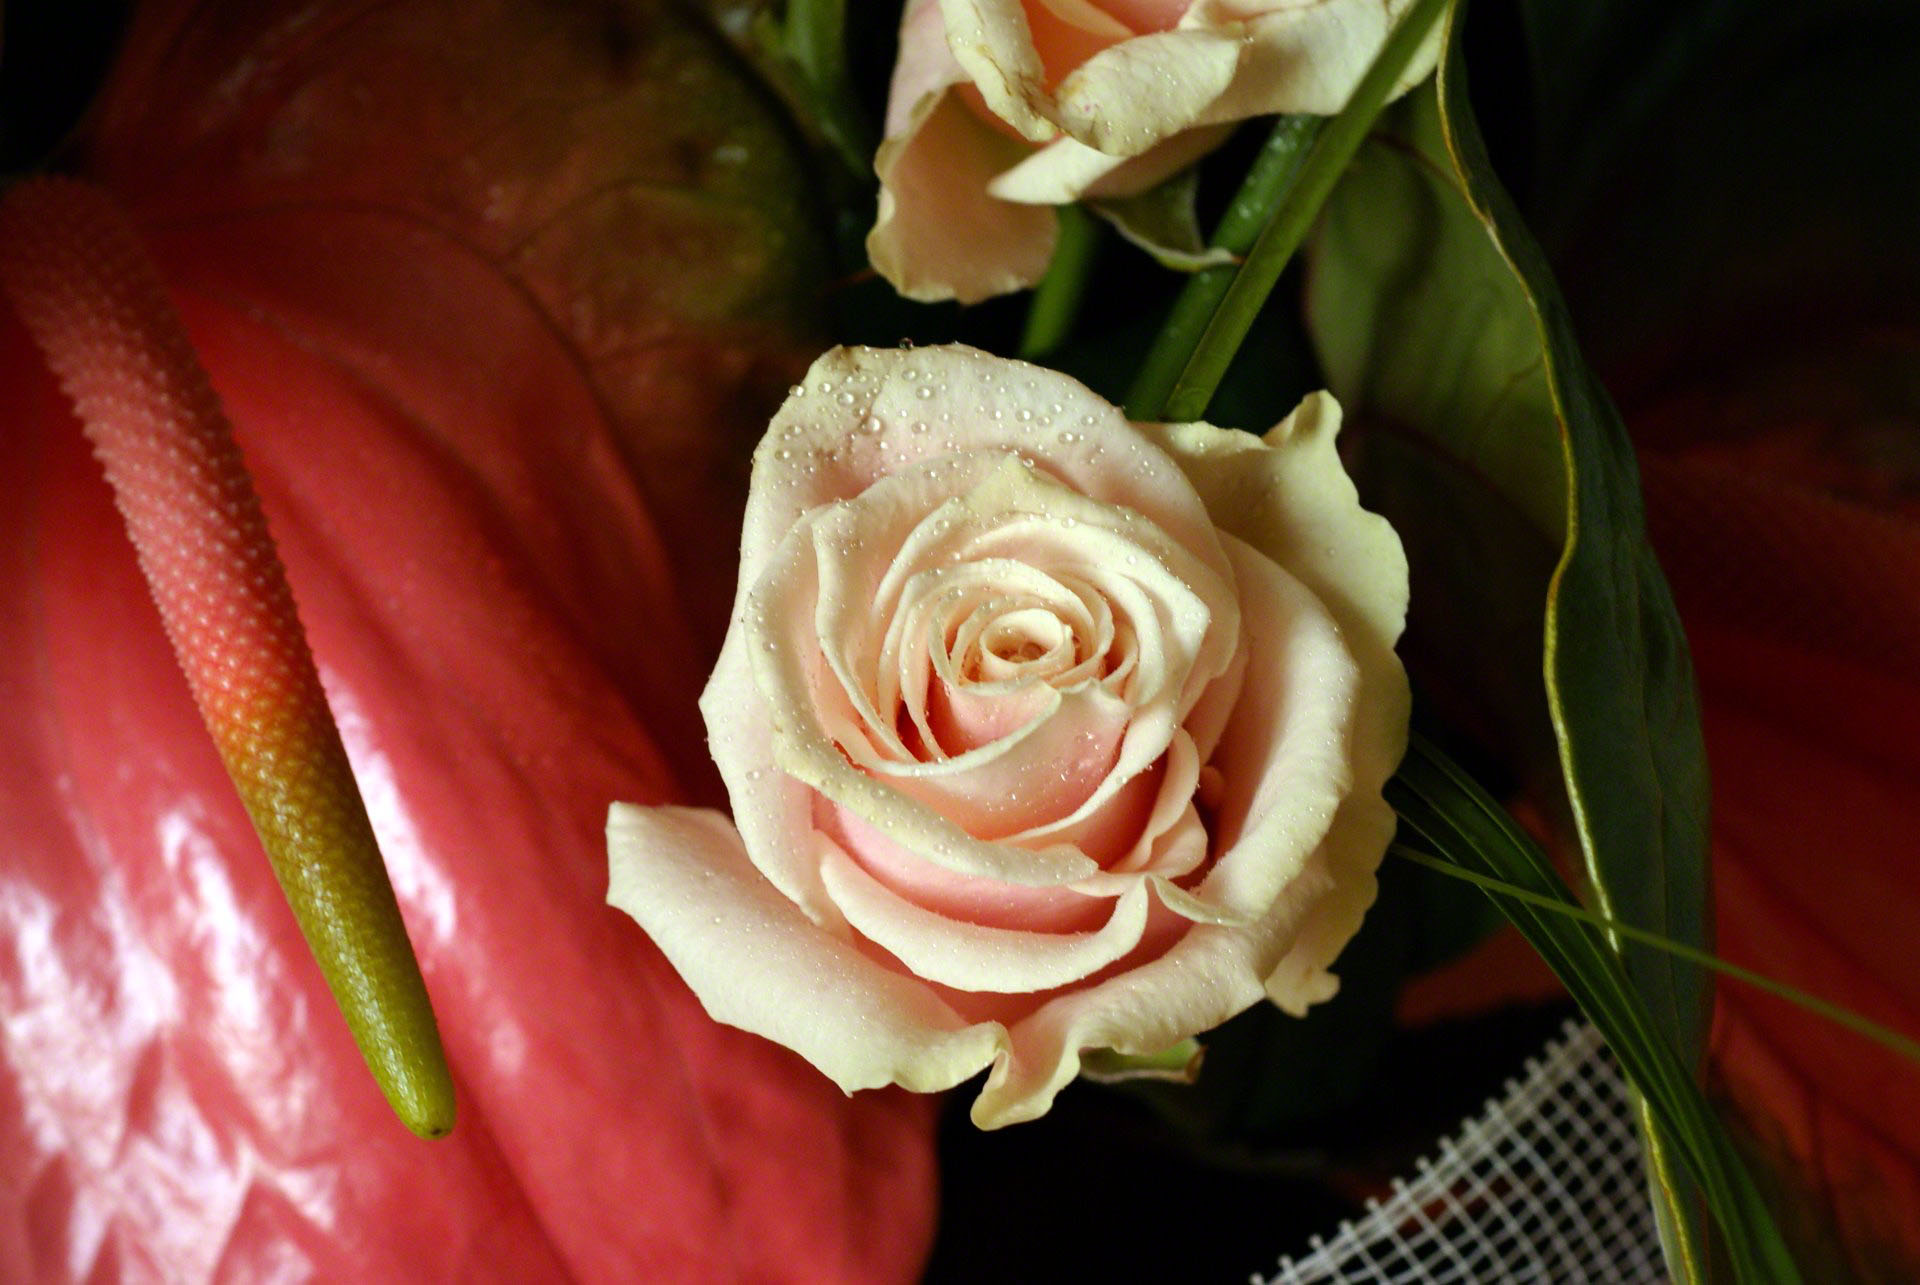 http://www.fabiovisentin.com/photography/photo/12/peach-rose-00854.jpg